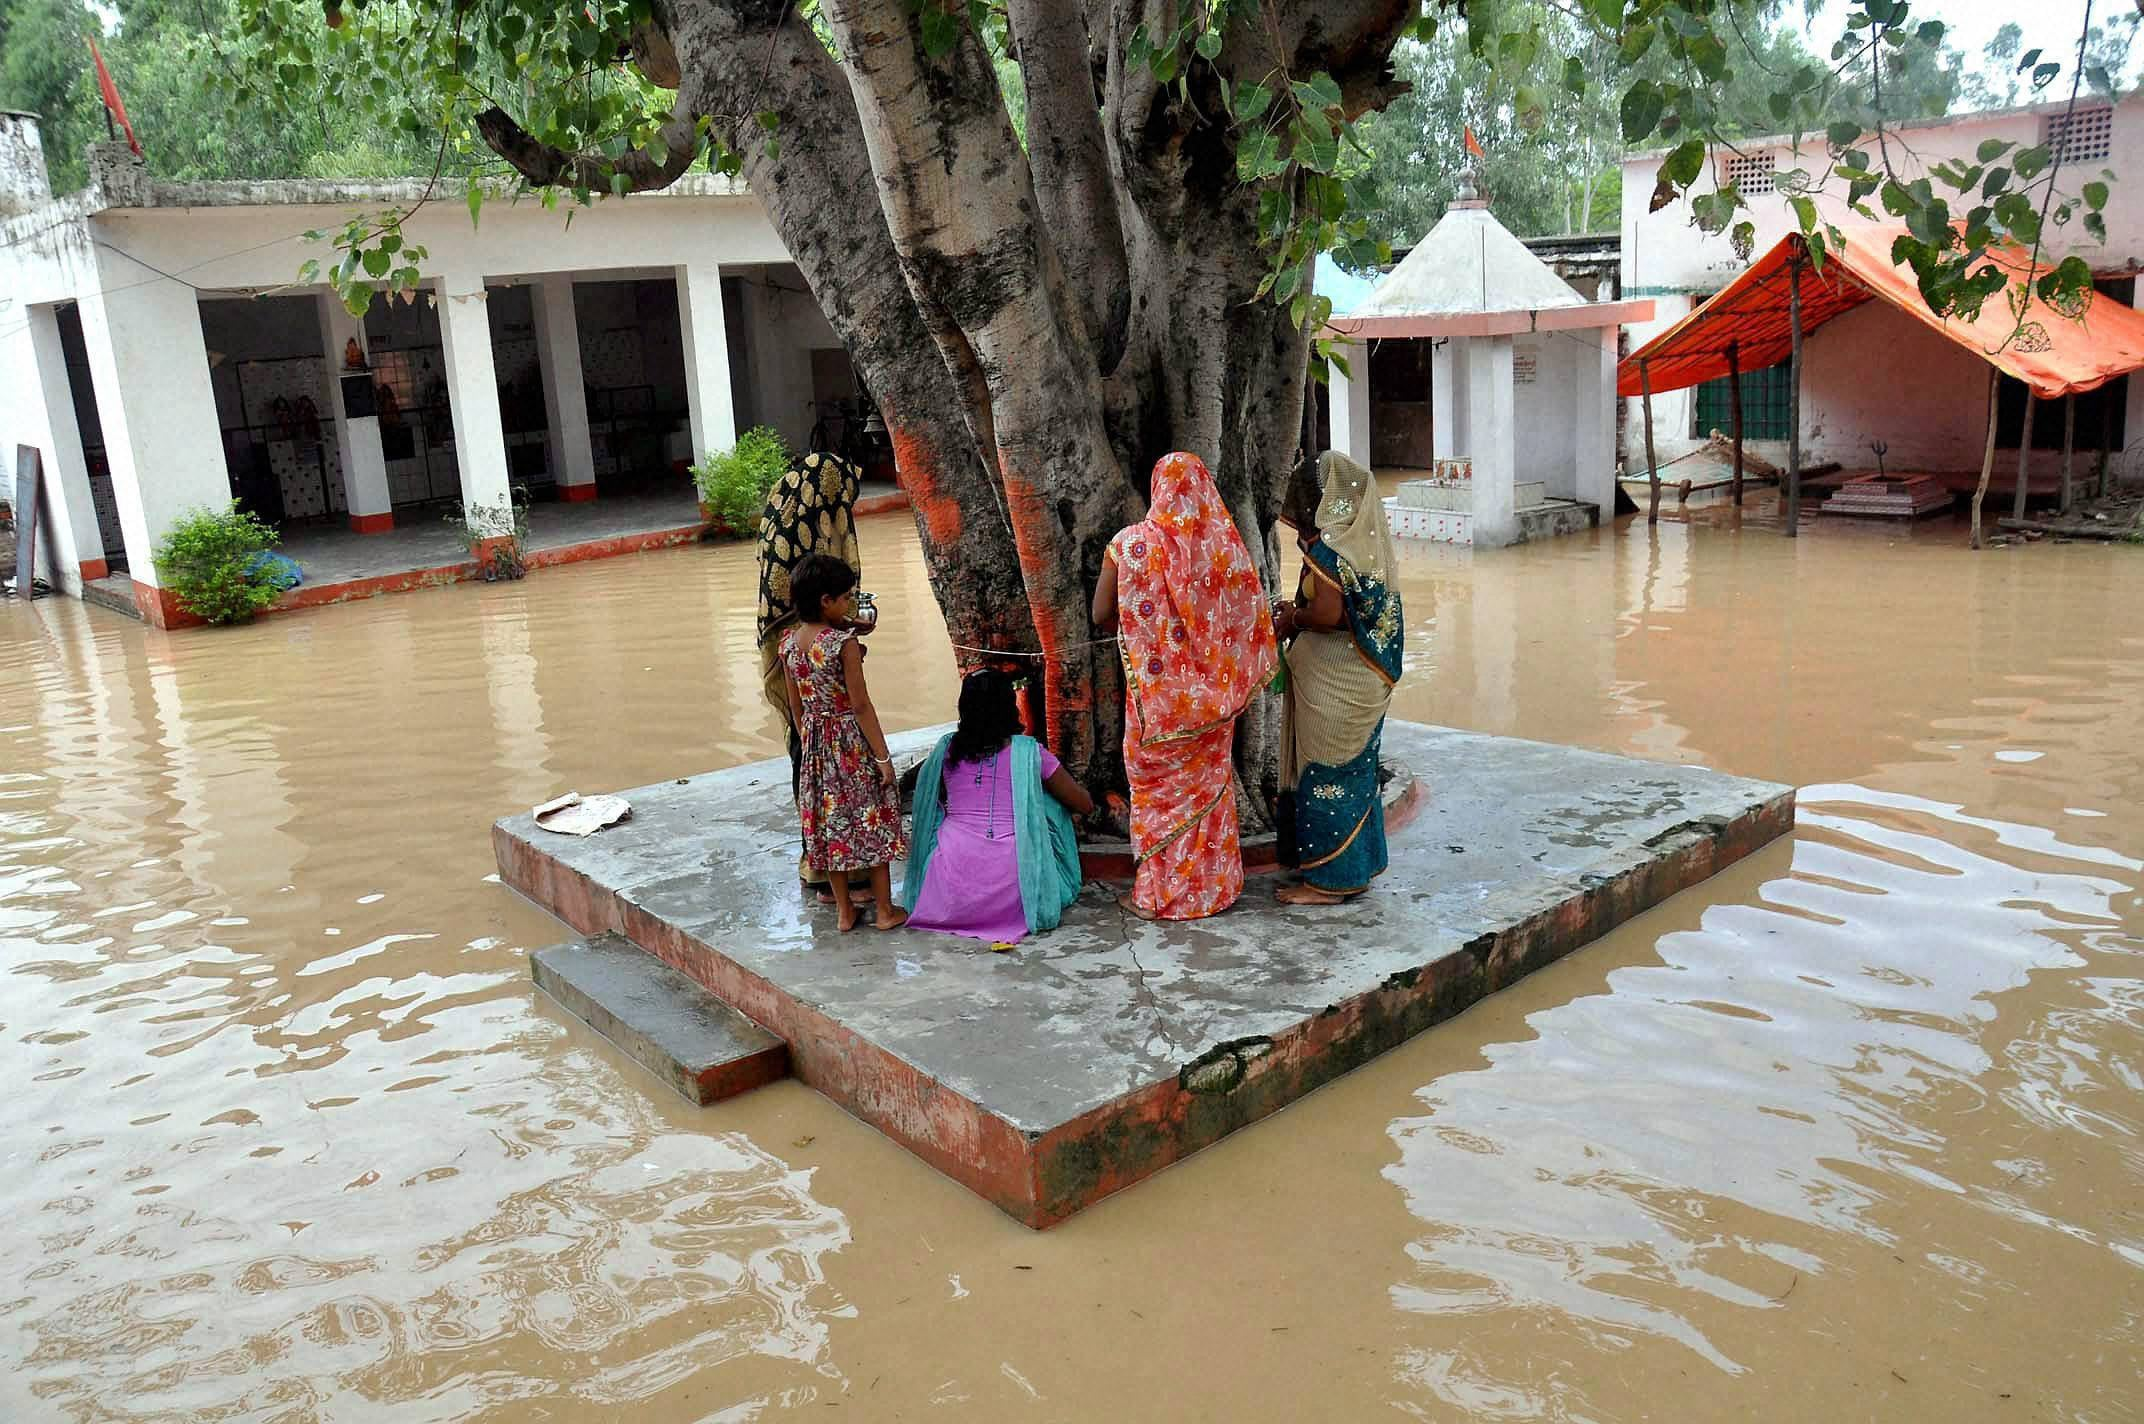 Women, perform worship, Peepal tree, locality, flooded, Ramganga River, Moradabad district